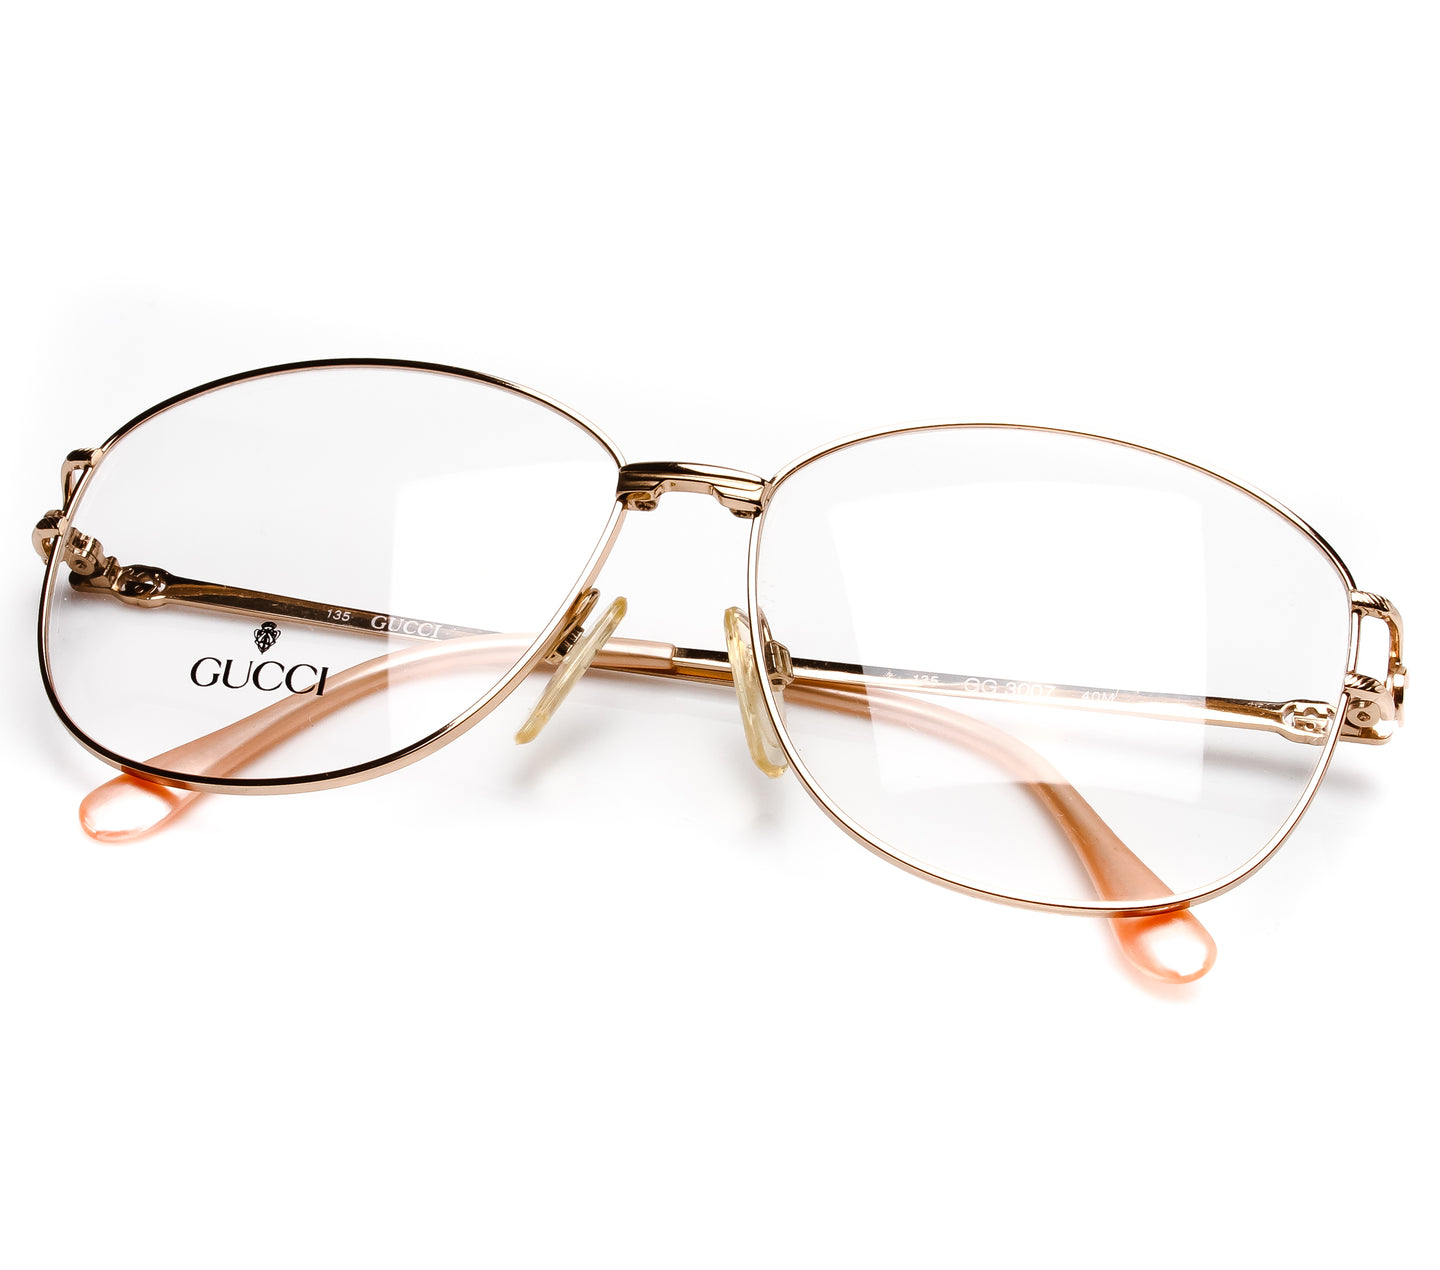 Gucci 3007 40M Thumbnail, Gucci , glasses frames, eyeglasses online, eyeglass frames, mens glasses, womens glasses, buy glasses online, designer eyeglasses, vintage sunglasses, retro sunglasses, vintage glasses, sunglass, eyeglass, glasses, lens, vintage frames company, vf